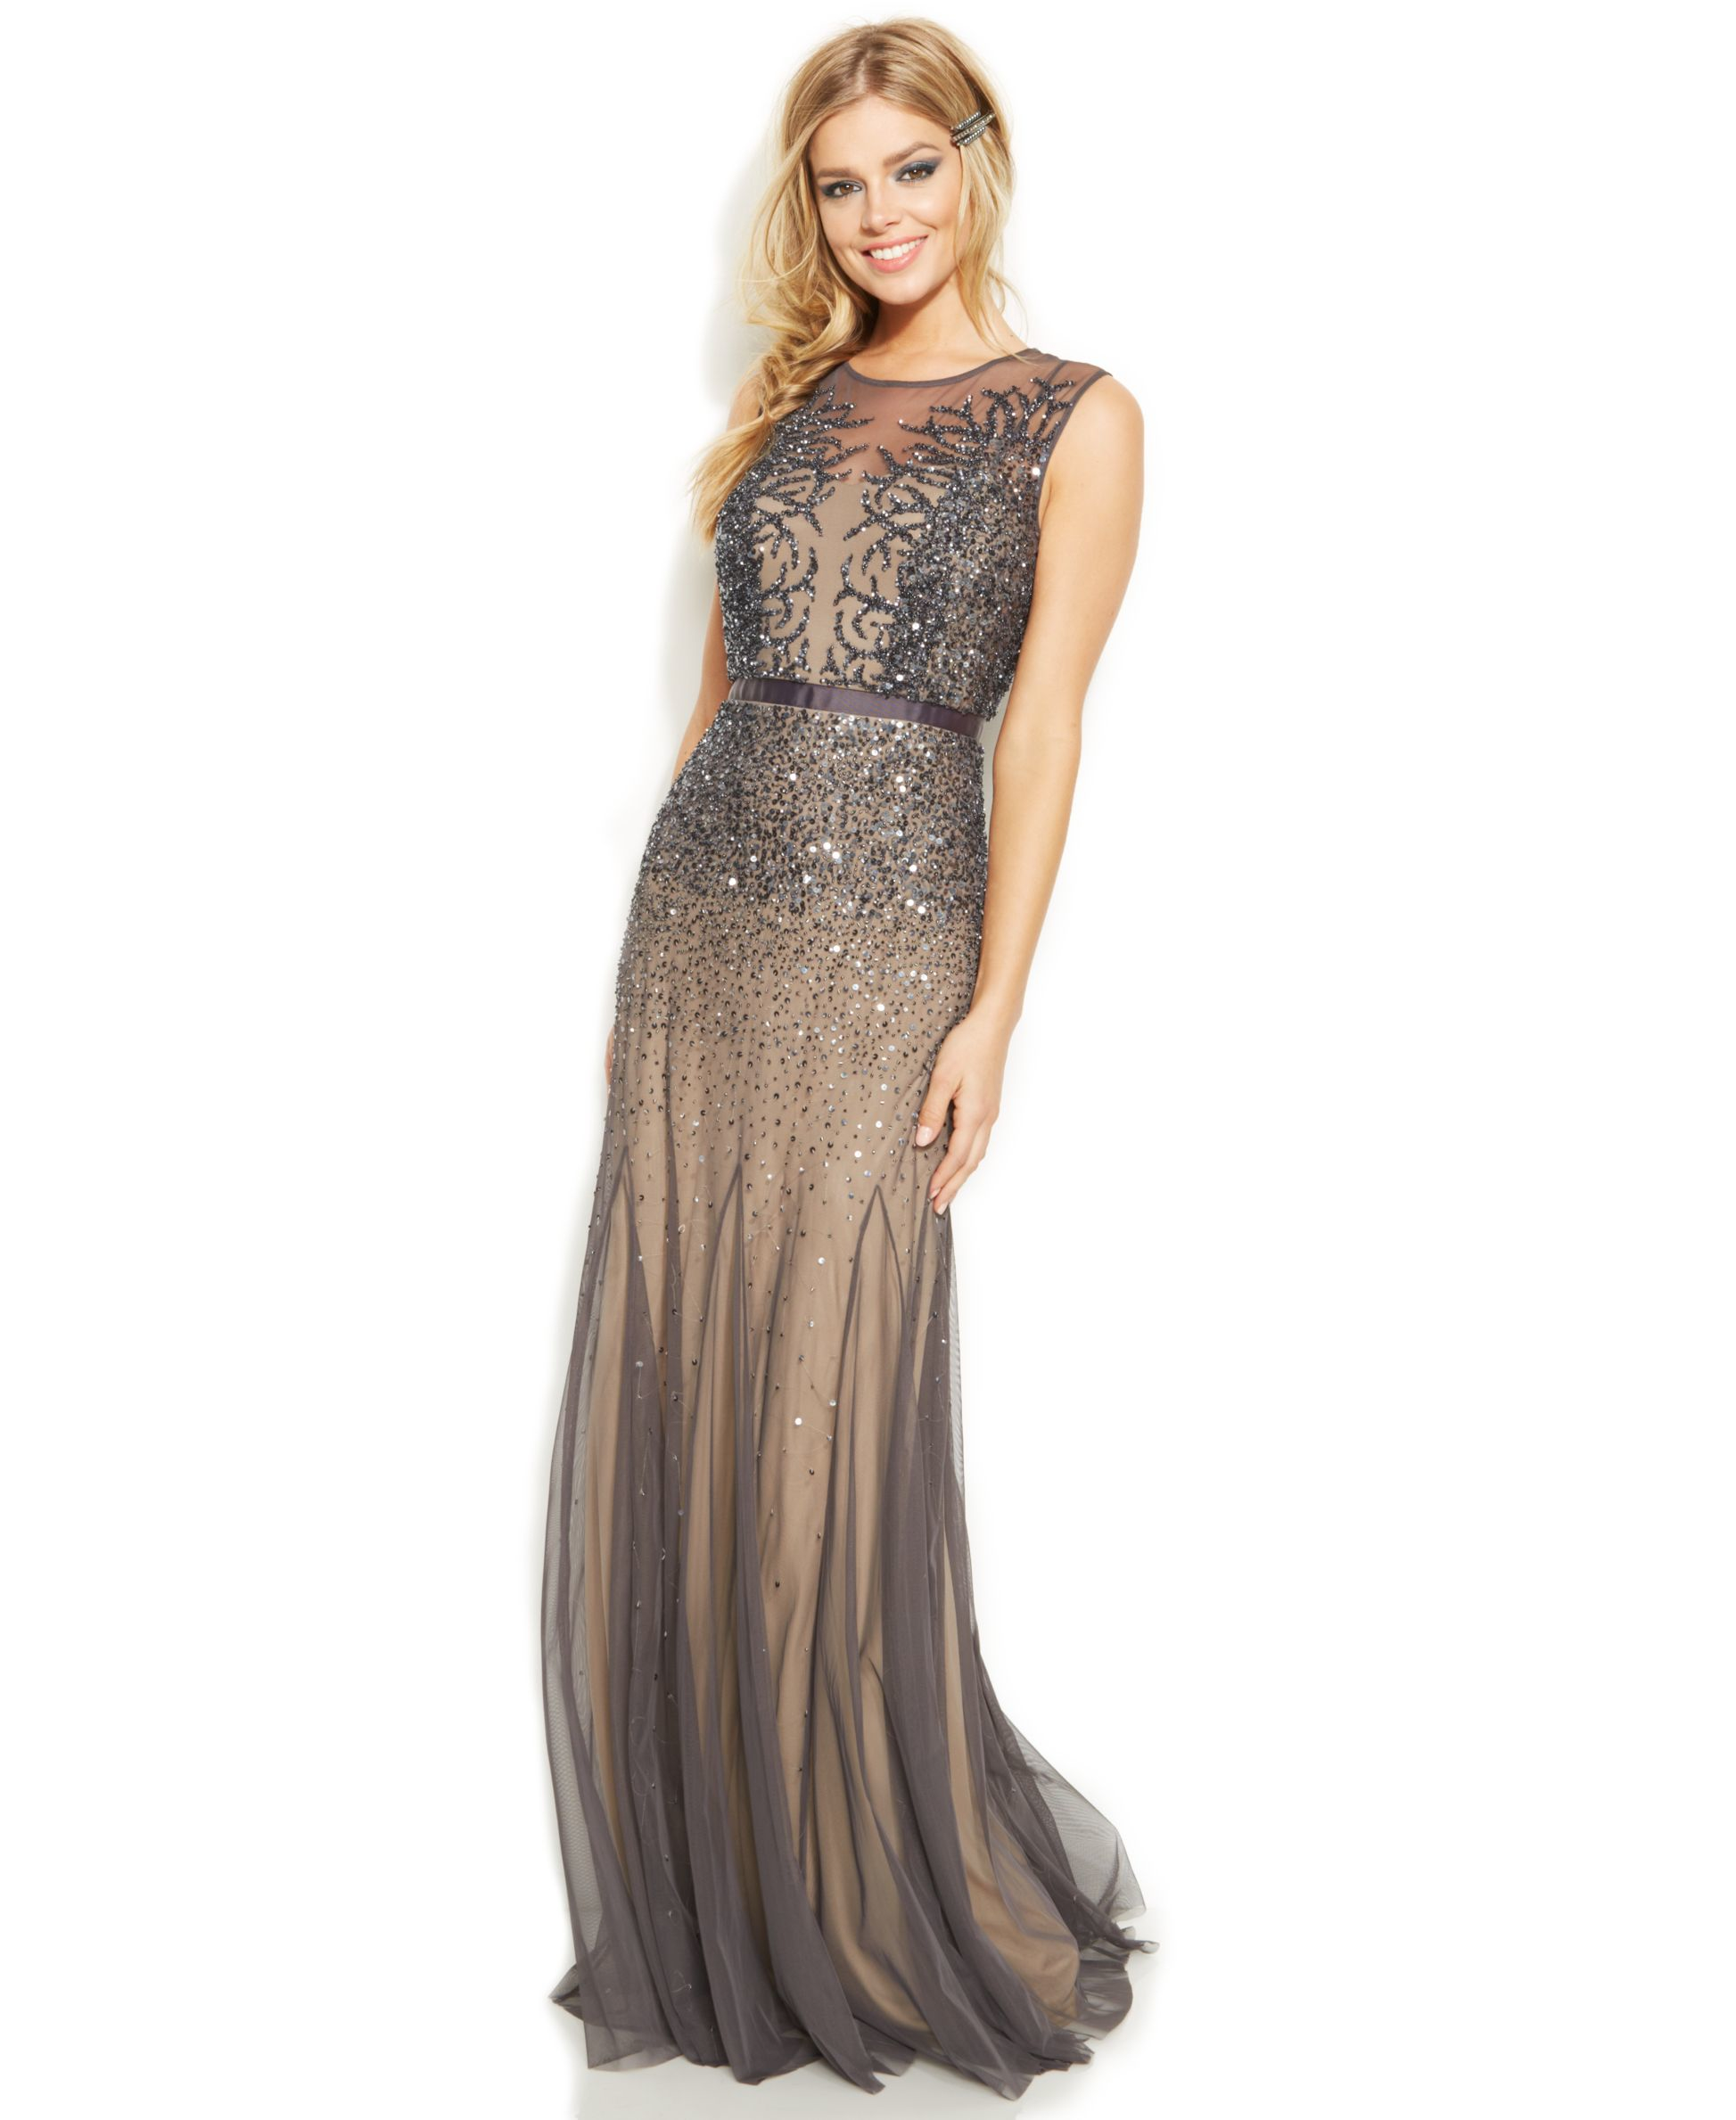 Lyst - Adrianna Papell Beaded Illusion Mermaid Gown in Metallic